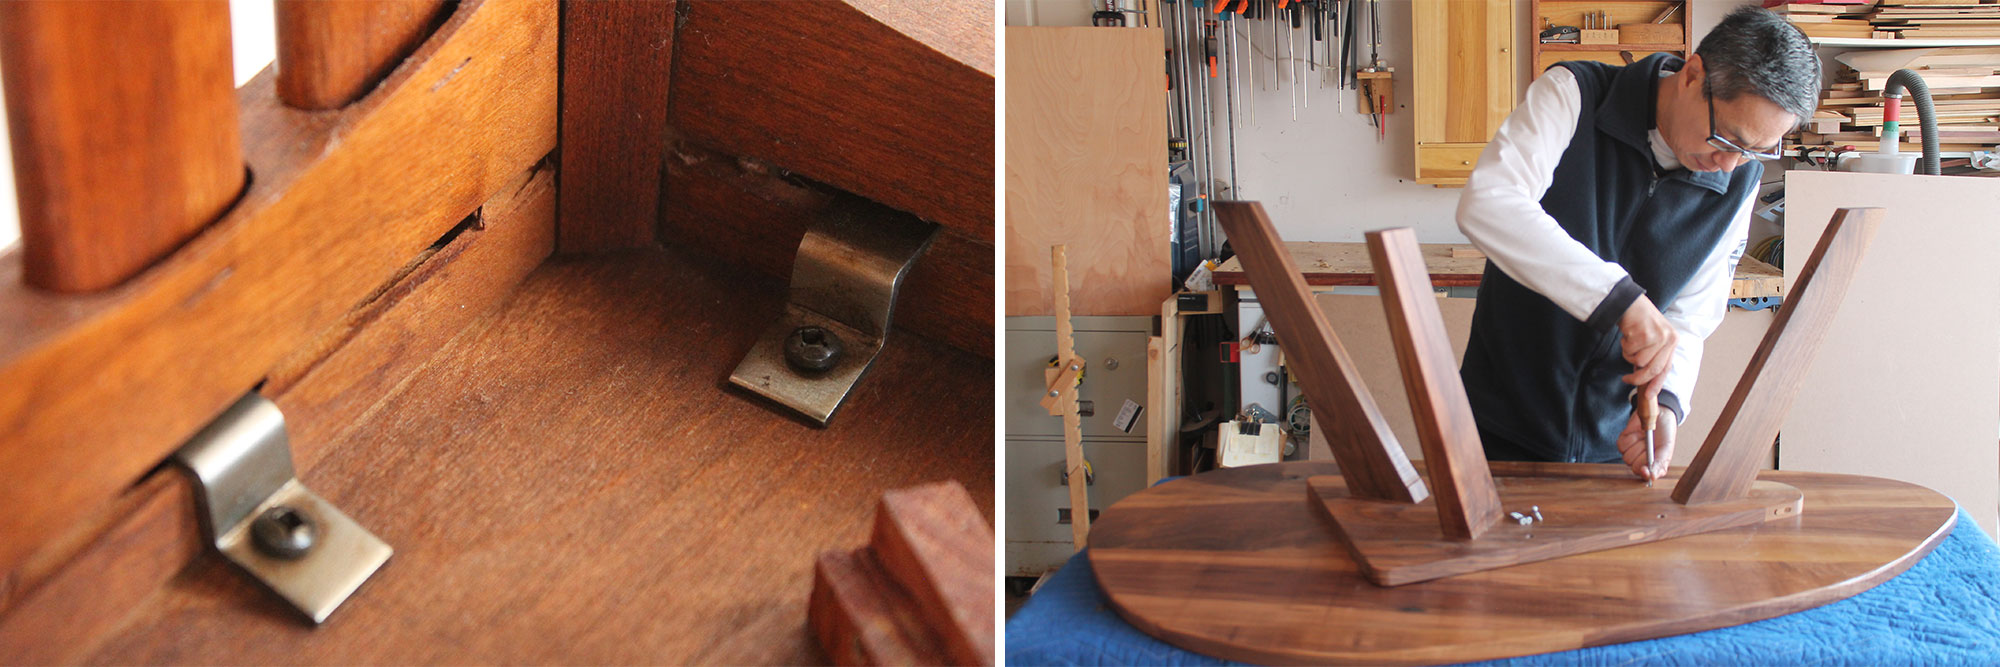 Left: Using Z-clips to attach the tops so they can move across their width. Right: Screwing the table top to its base using elongated holes.